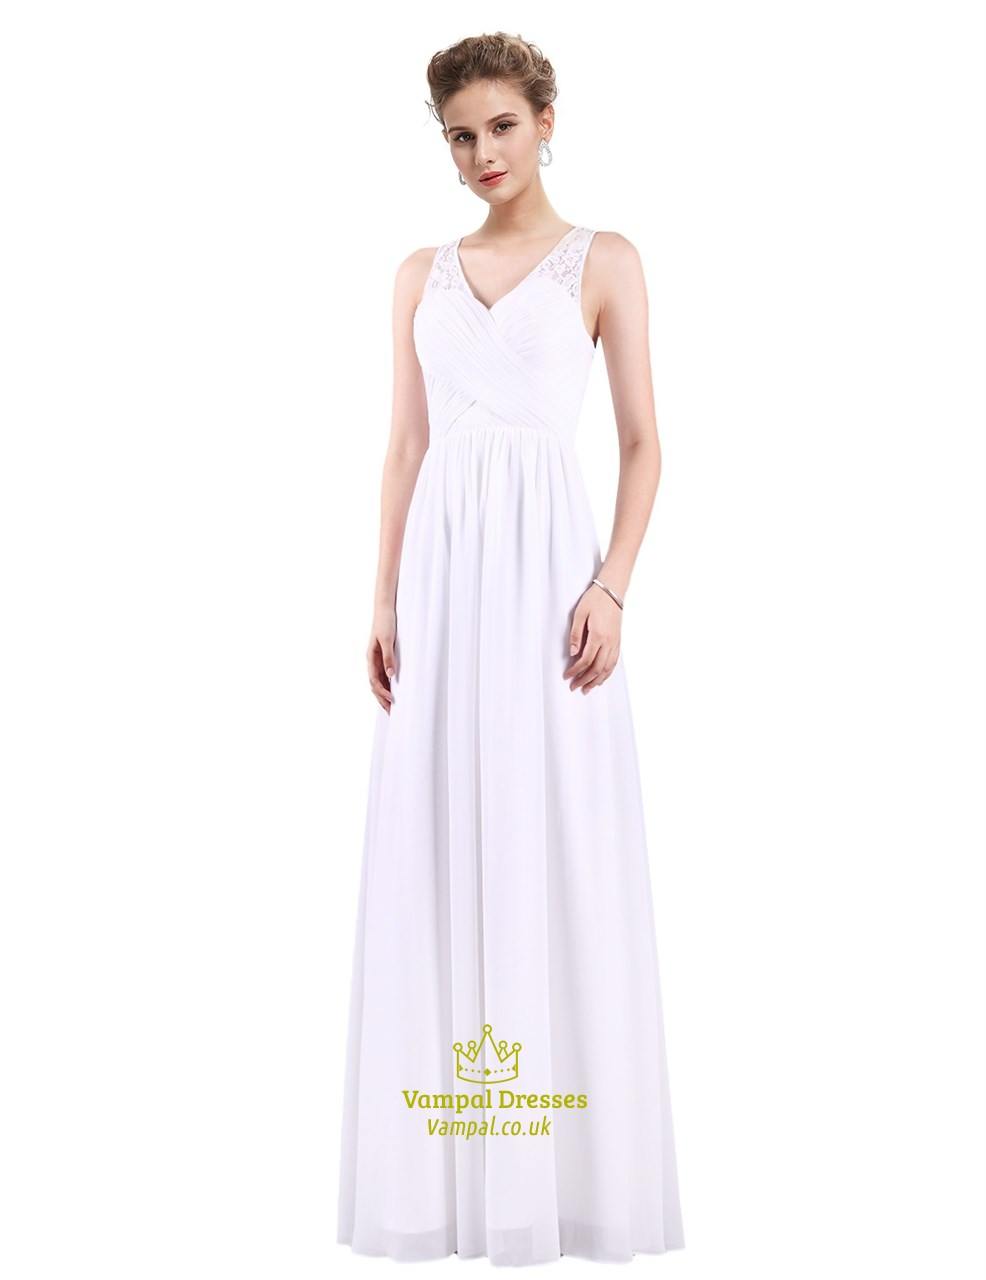 884b4718034 Classic V Neck Long Chiffon Floor Length Illusion Neckline Prom Dress.  Product Photos. Color